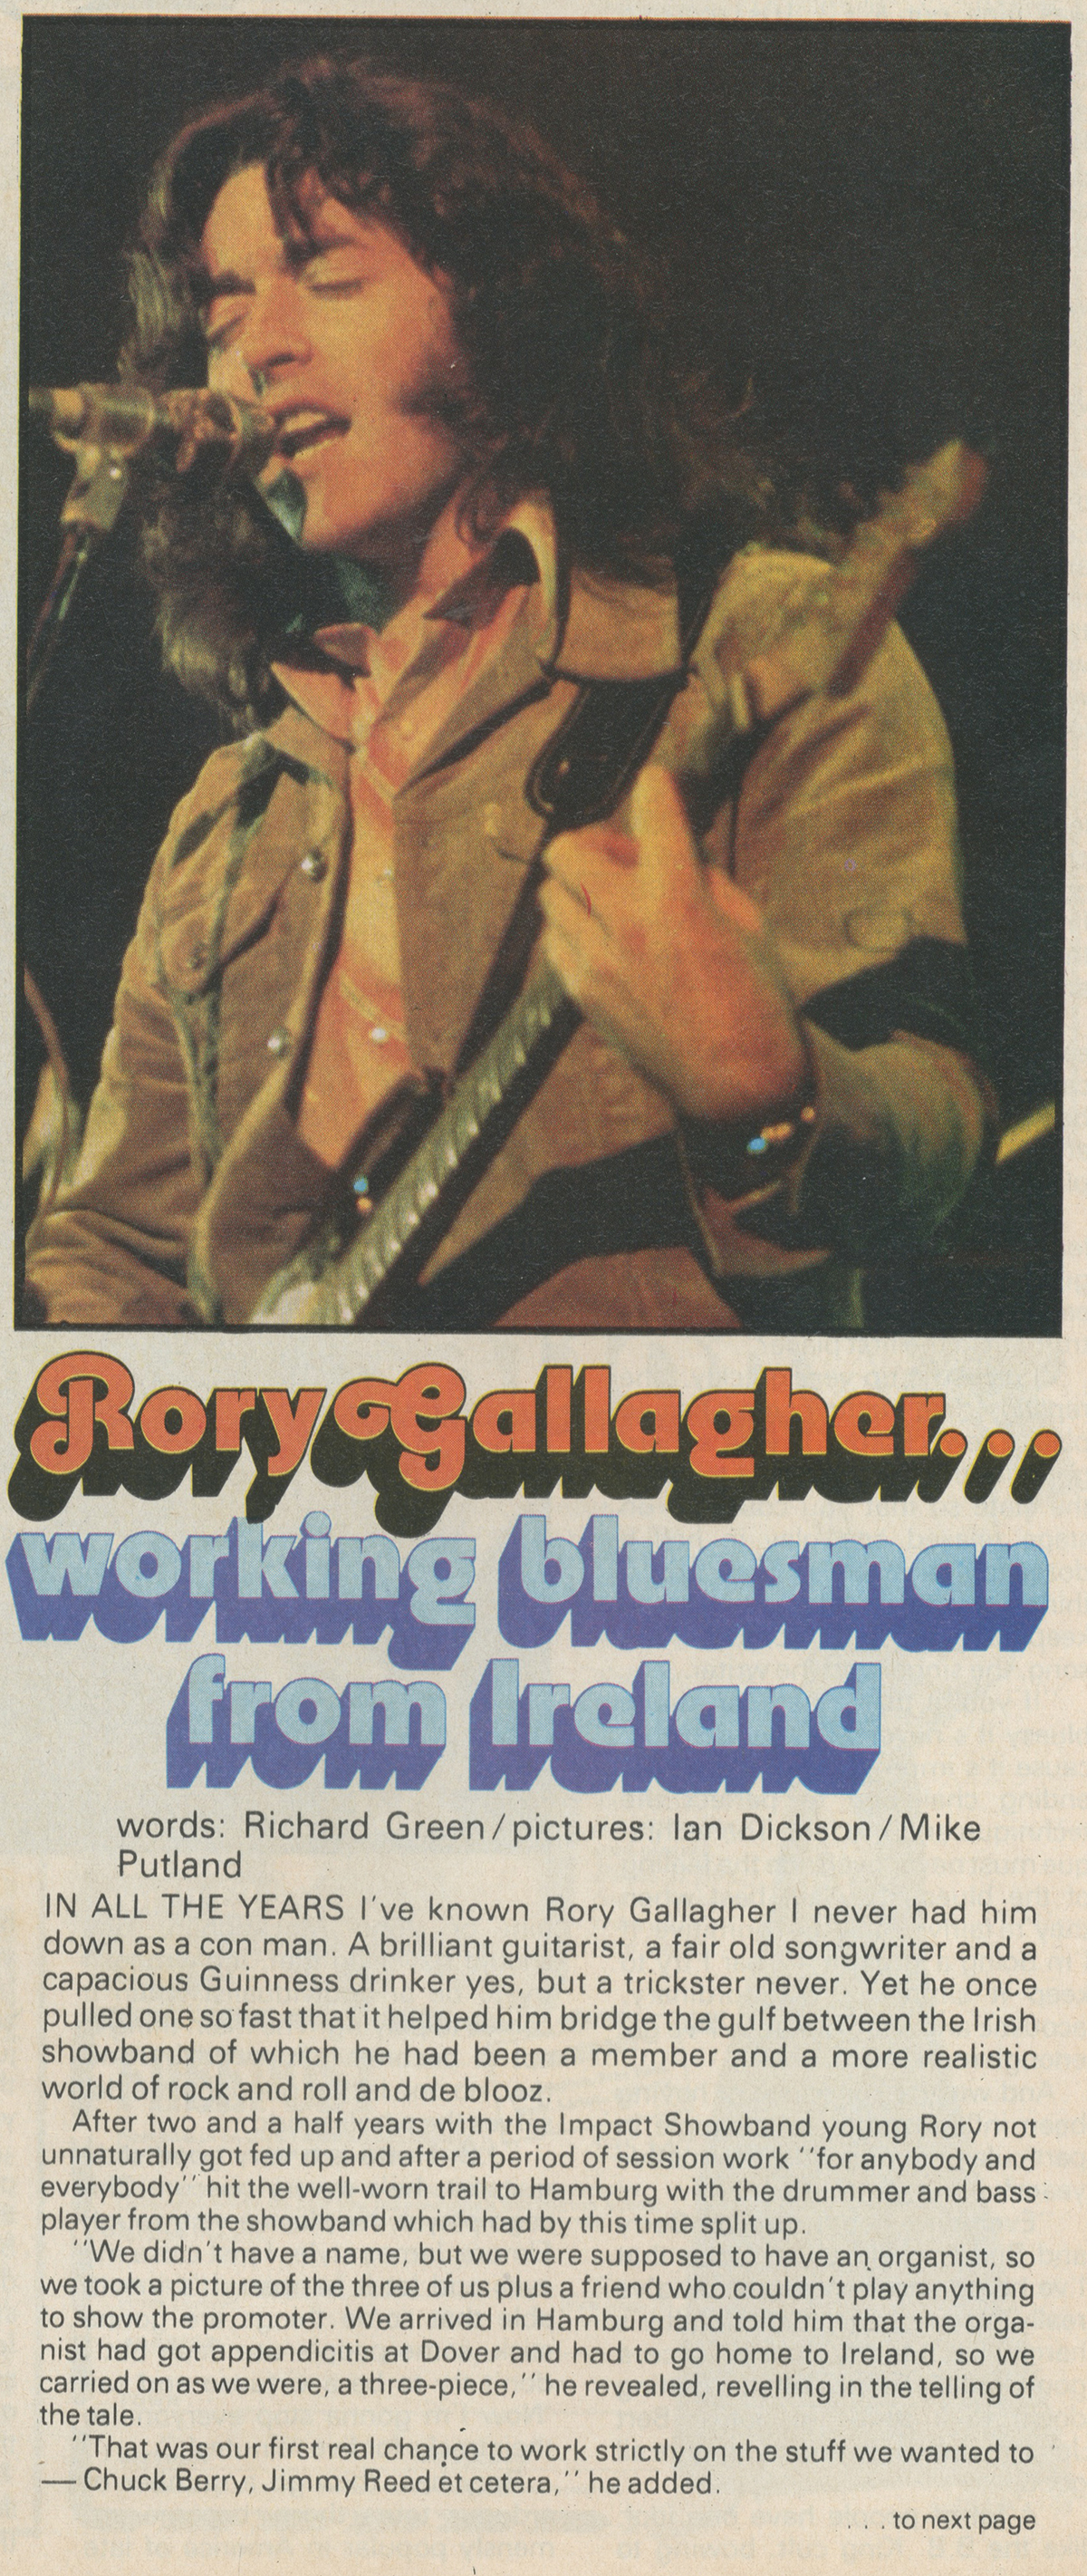 music-scene-zrory-gallagher-1974-1